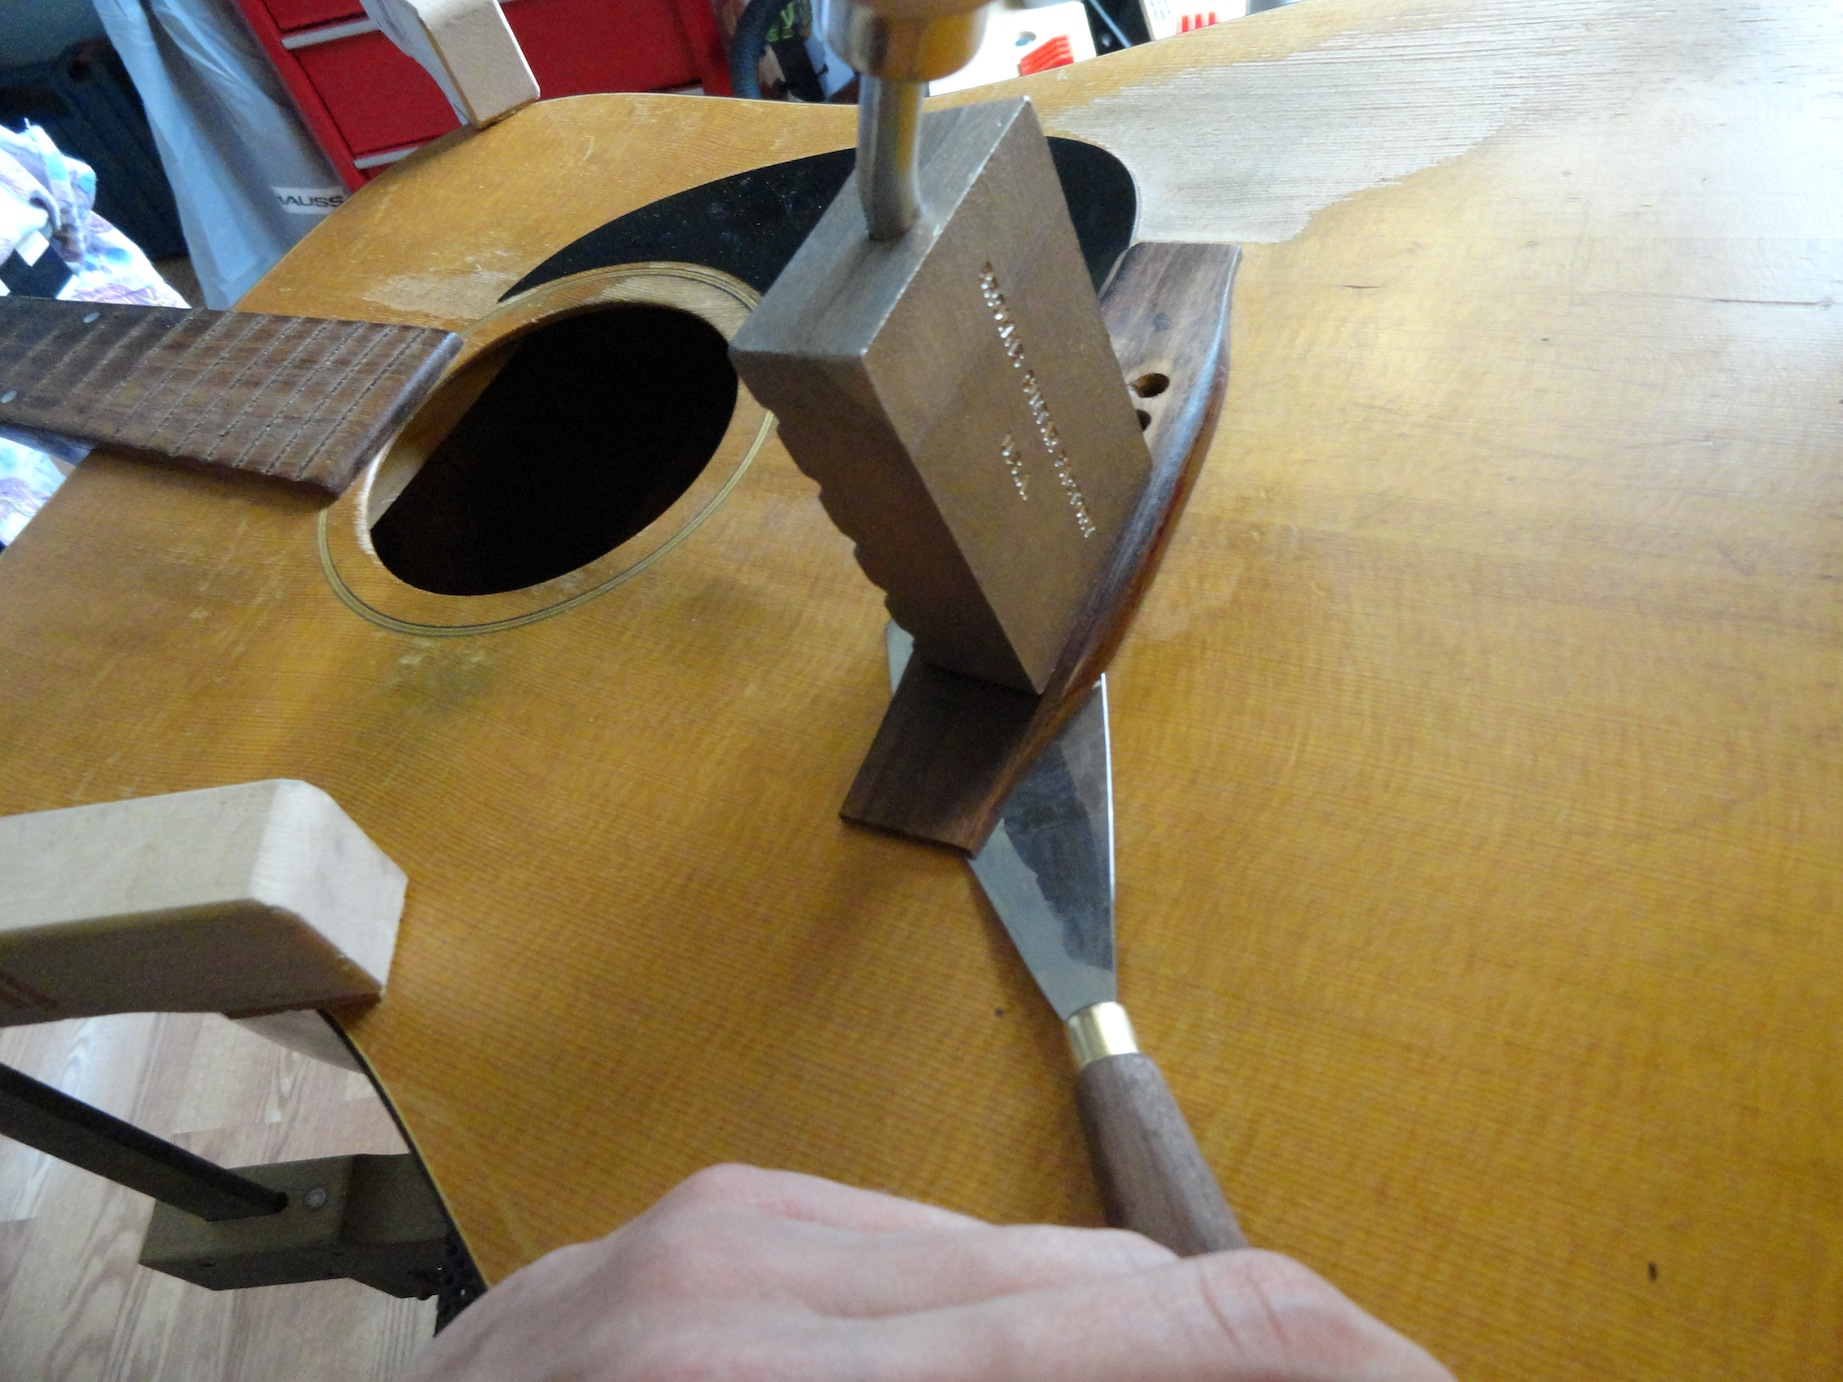 Repairing an acoustic guitar bridge - removing bridge